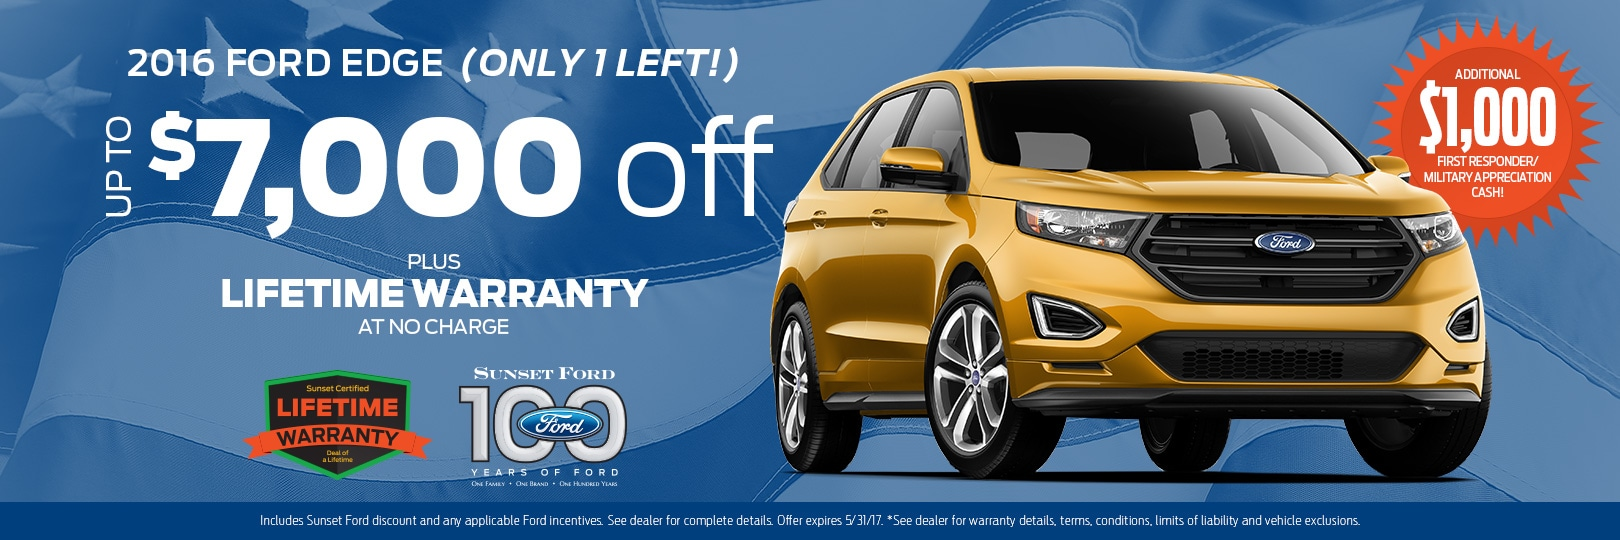 Ford Edge Waterloo Special